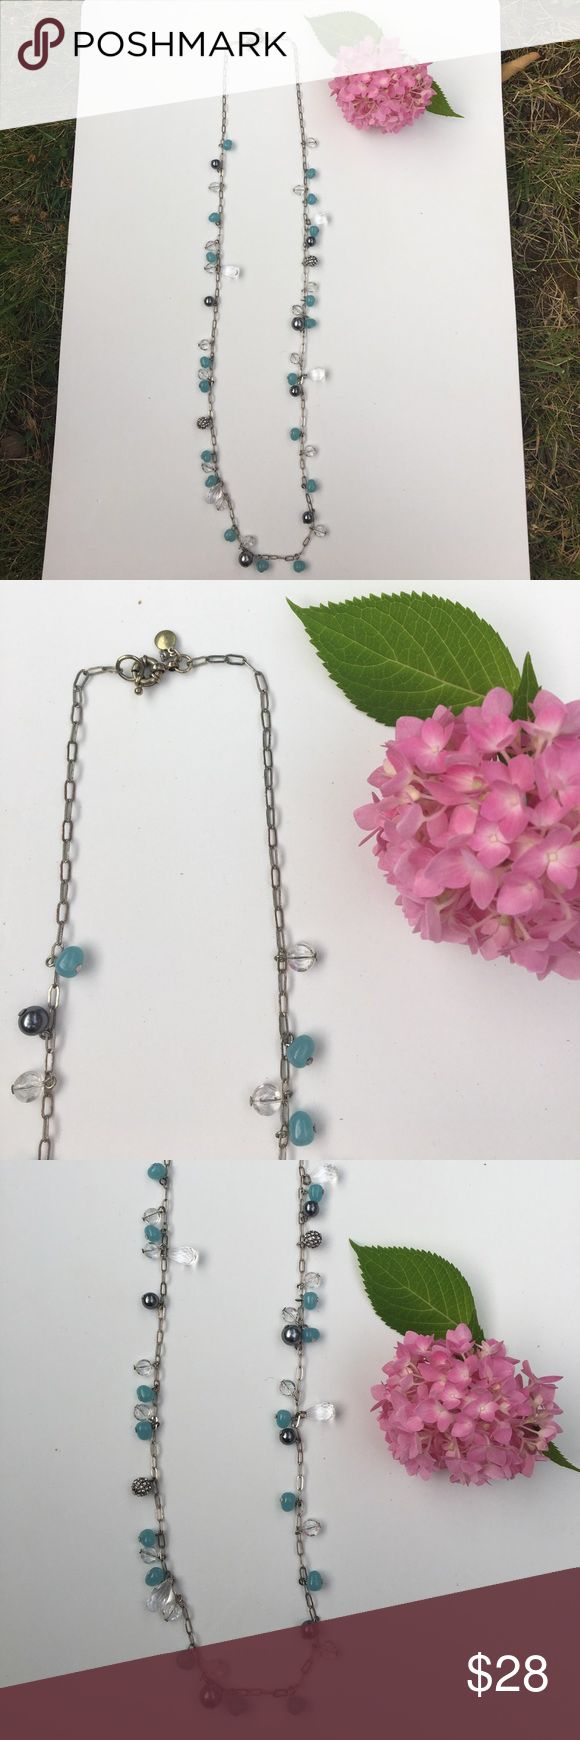 J Crew silver and aqua beaded necklace J crew necklace with Aqua, clear, and , silver Pearl-like beads on a silver chain. Inches long excellent condition J. Crew Jewelry Necklaces